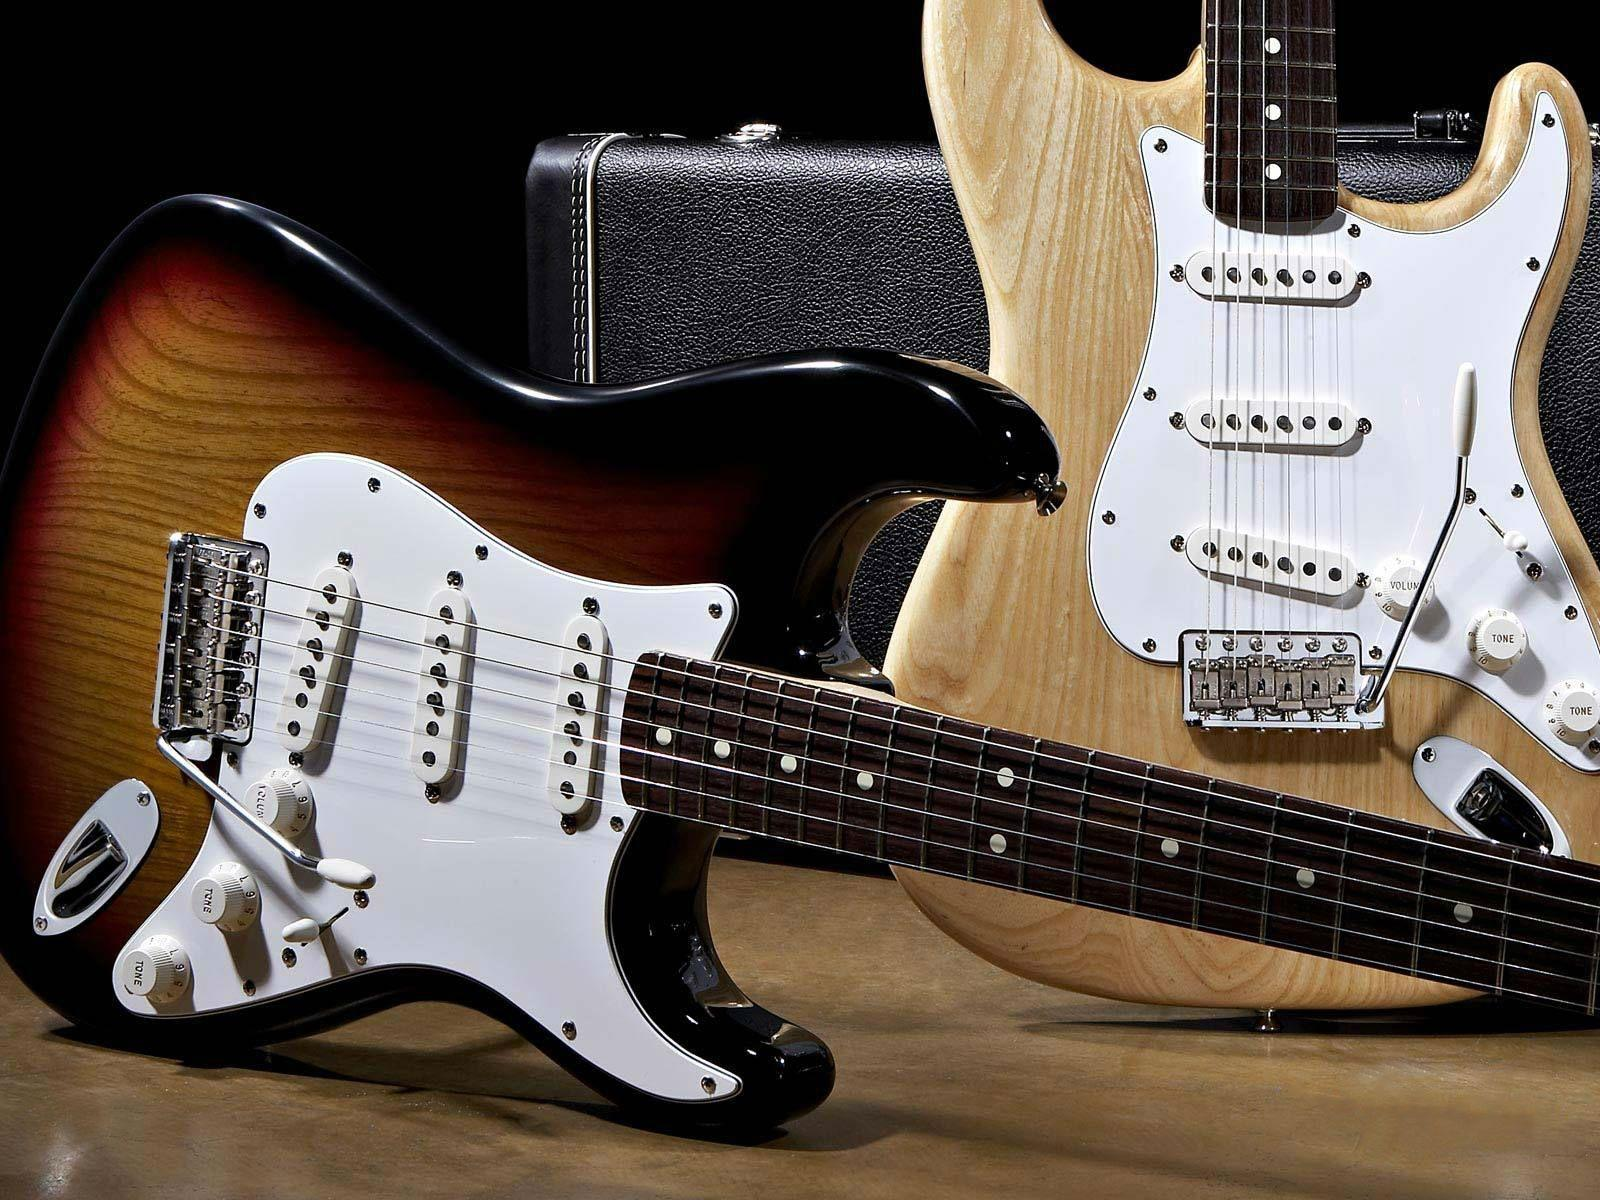 Wallpapers For > Fender Stratocaster Guitar Wallpaper